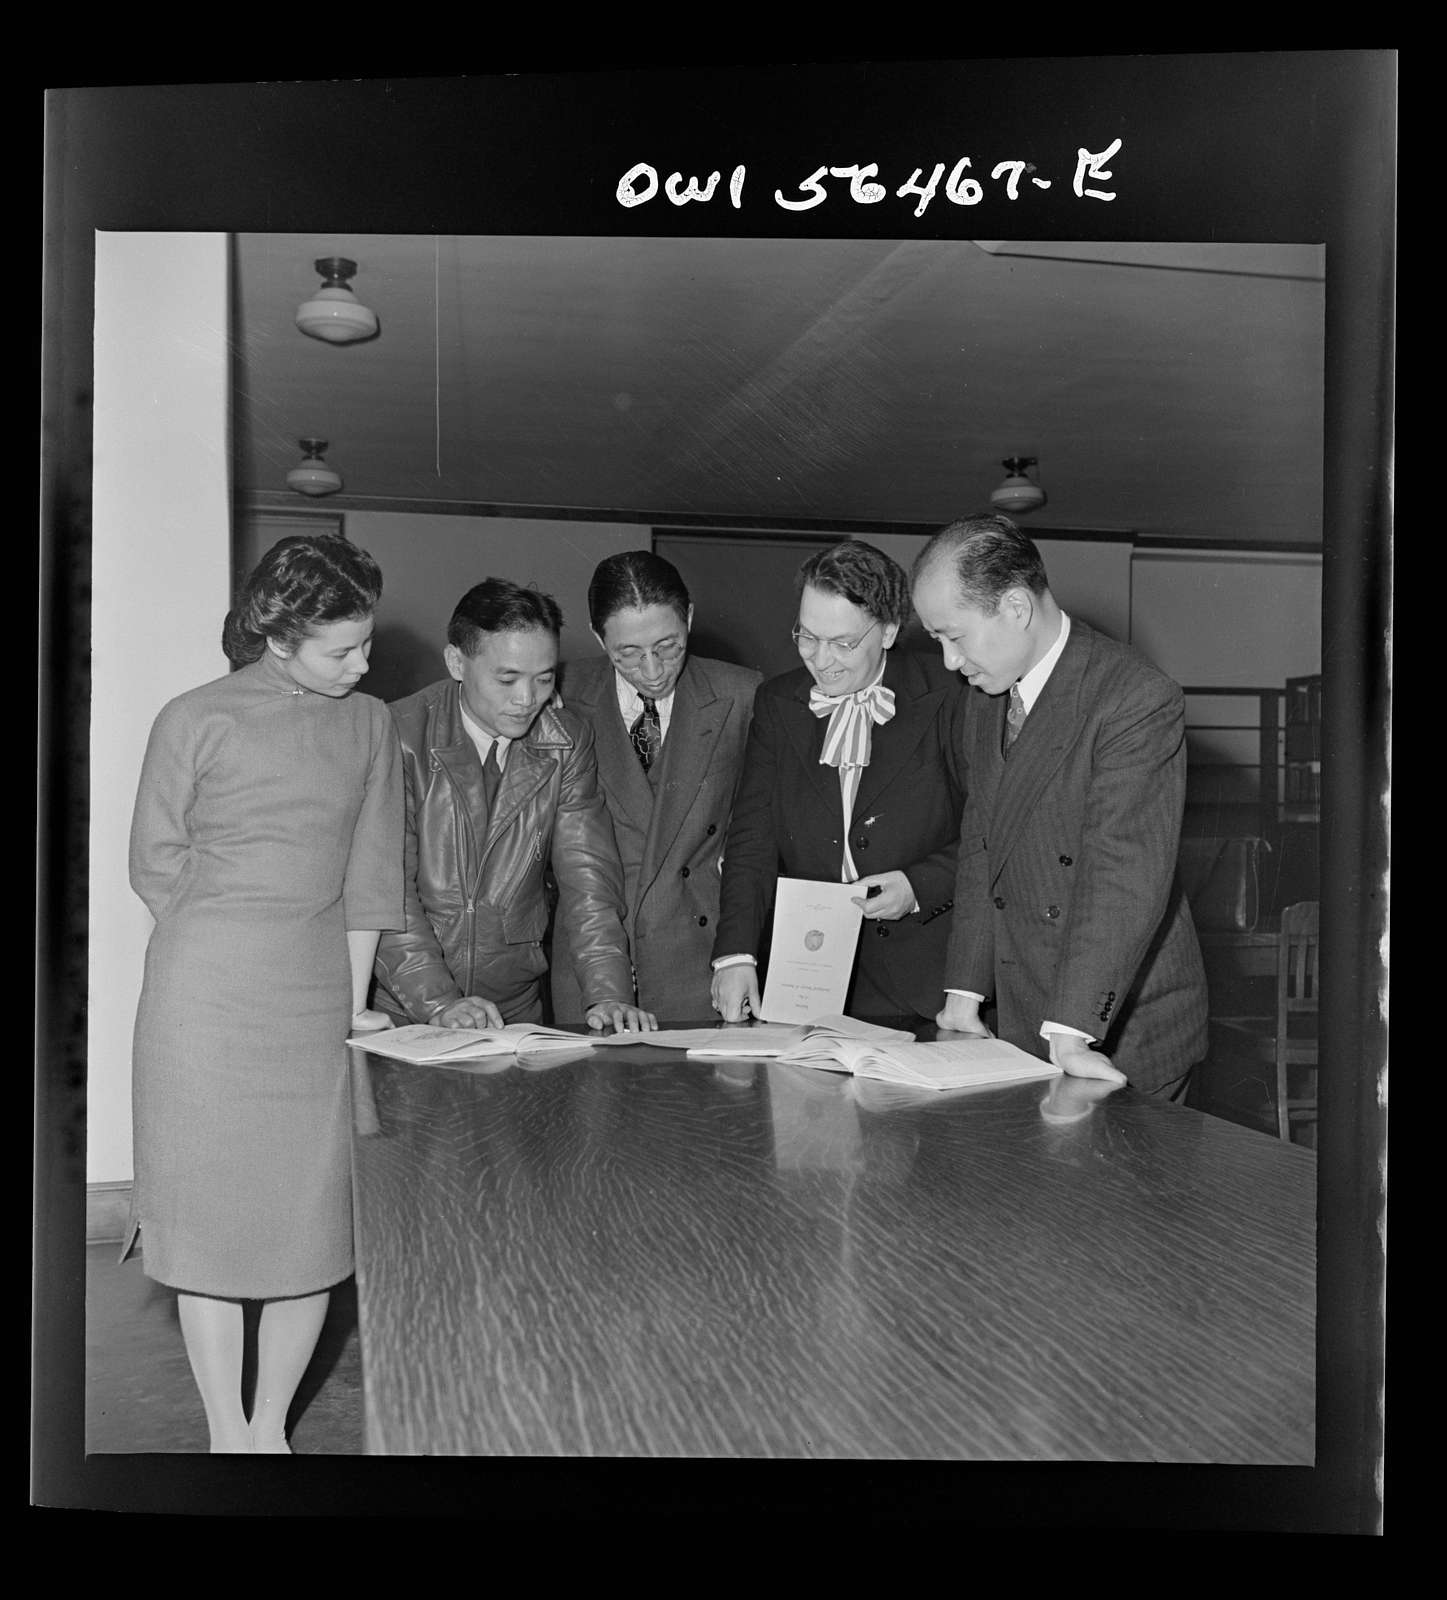 Chinese technical experts inspect reference material in University of Maryland library where they were taking courses offered by the UNRRA (United Nations Relief and Rehabilitation Administration) training center. From left: Miss Ing (from Far Eastern Division, UNRRA Washington office); H.W. Li; .P.C. Chao; Miss Eleanor Hindler (special consultatnt, ILO office, Montreal, who is acting as coordinator of the course for Chinese technical experts at UNRRA training center); and C.C. Yeh